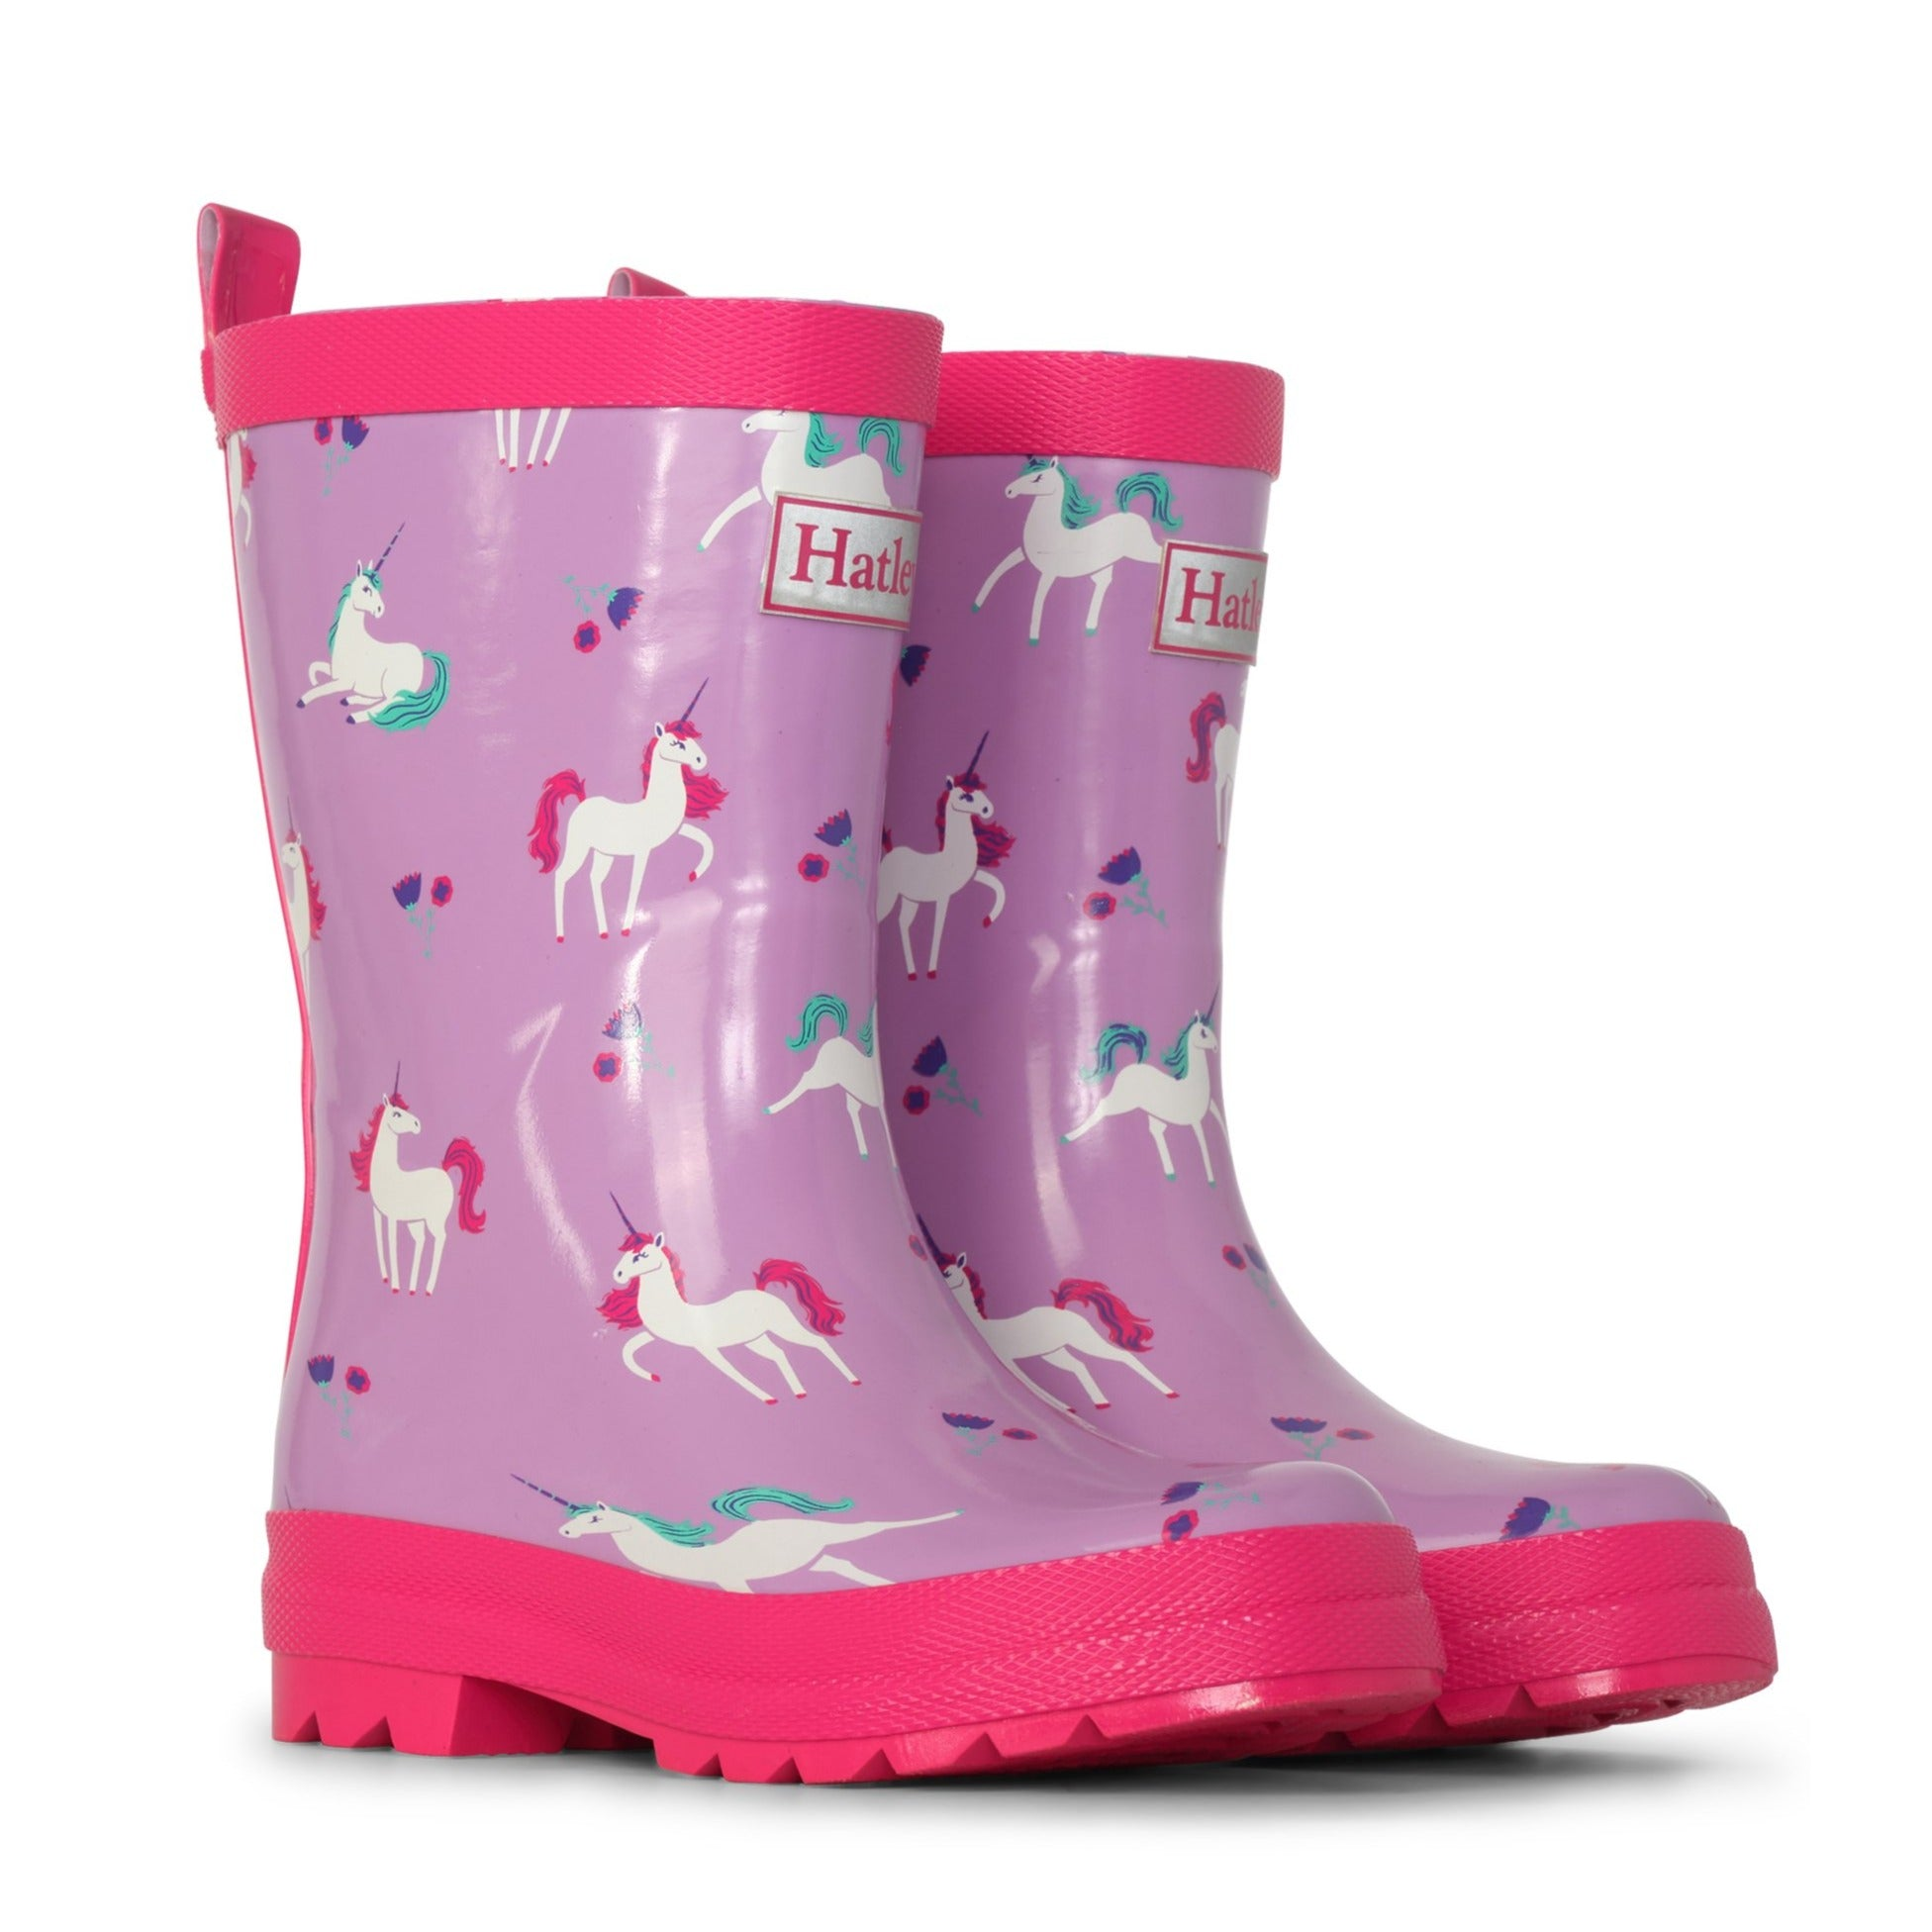 Playful Unicorns Shiny Rain Boots-Shoes-Hatley-4-Little Soldiers